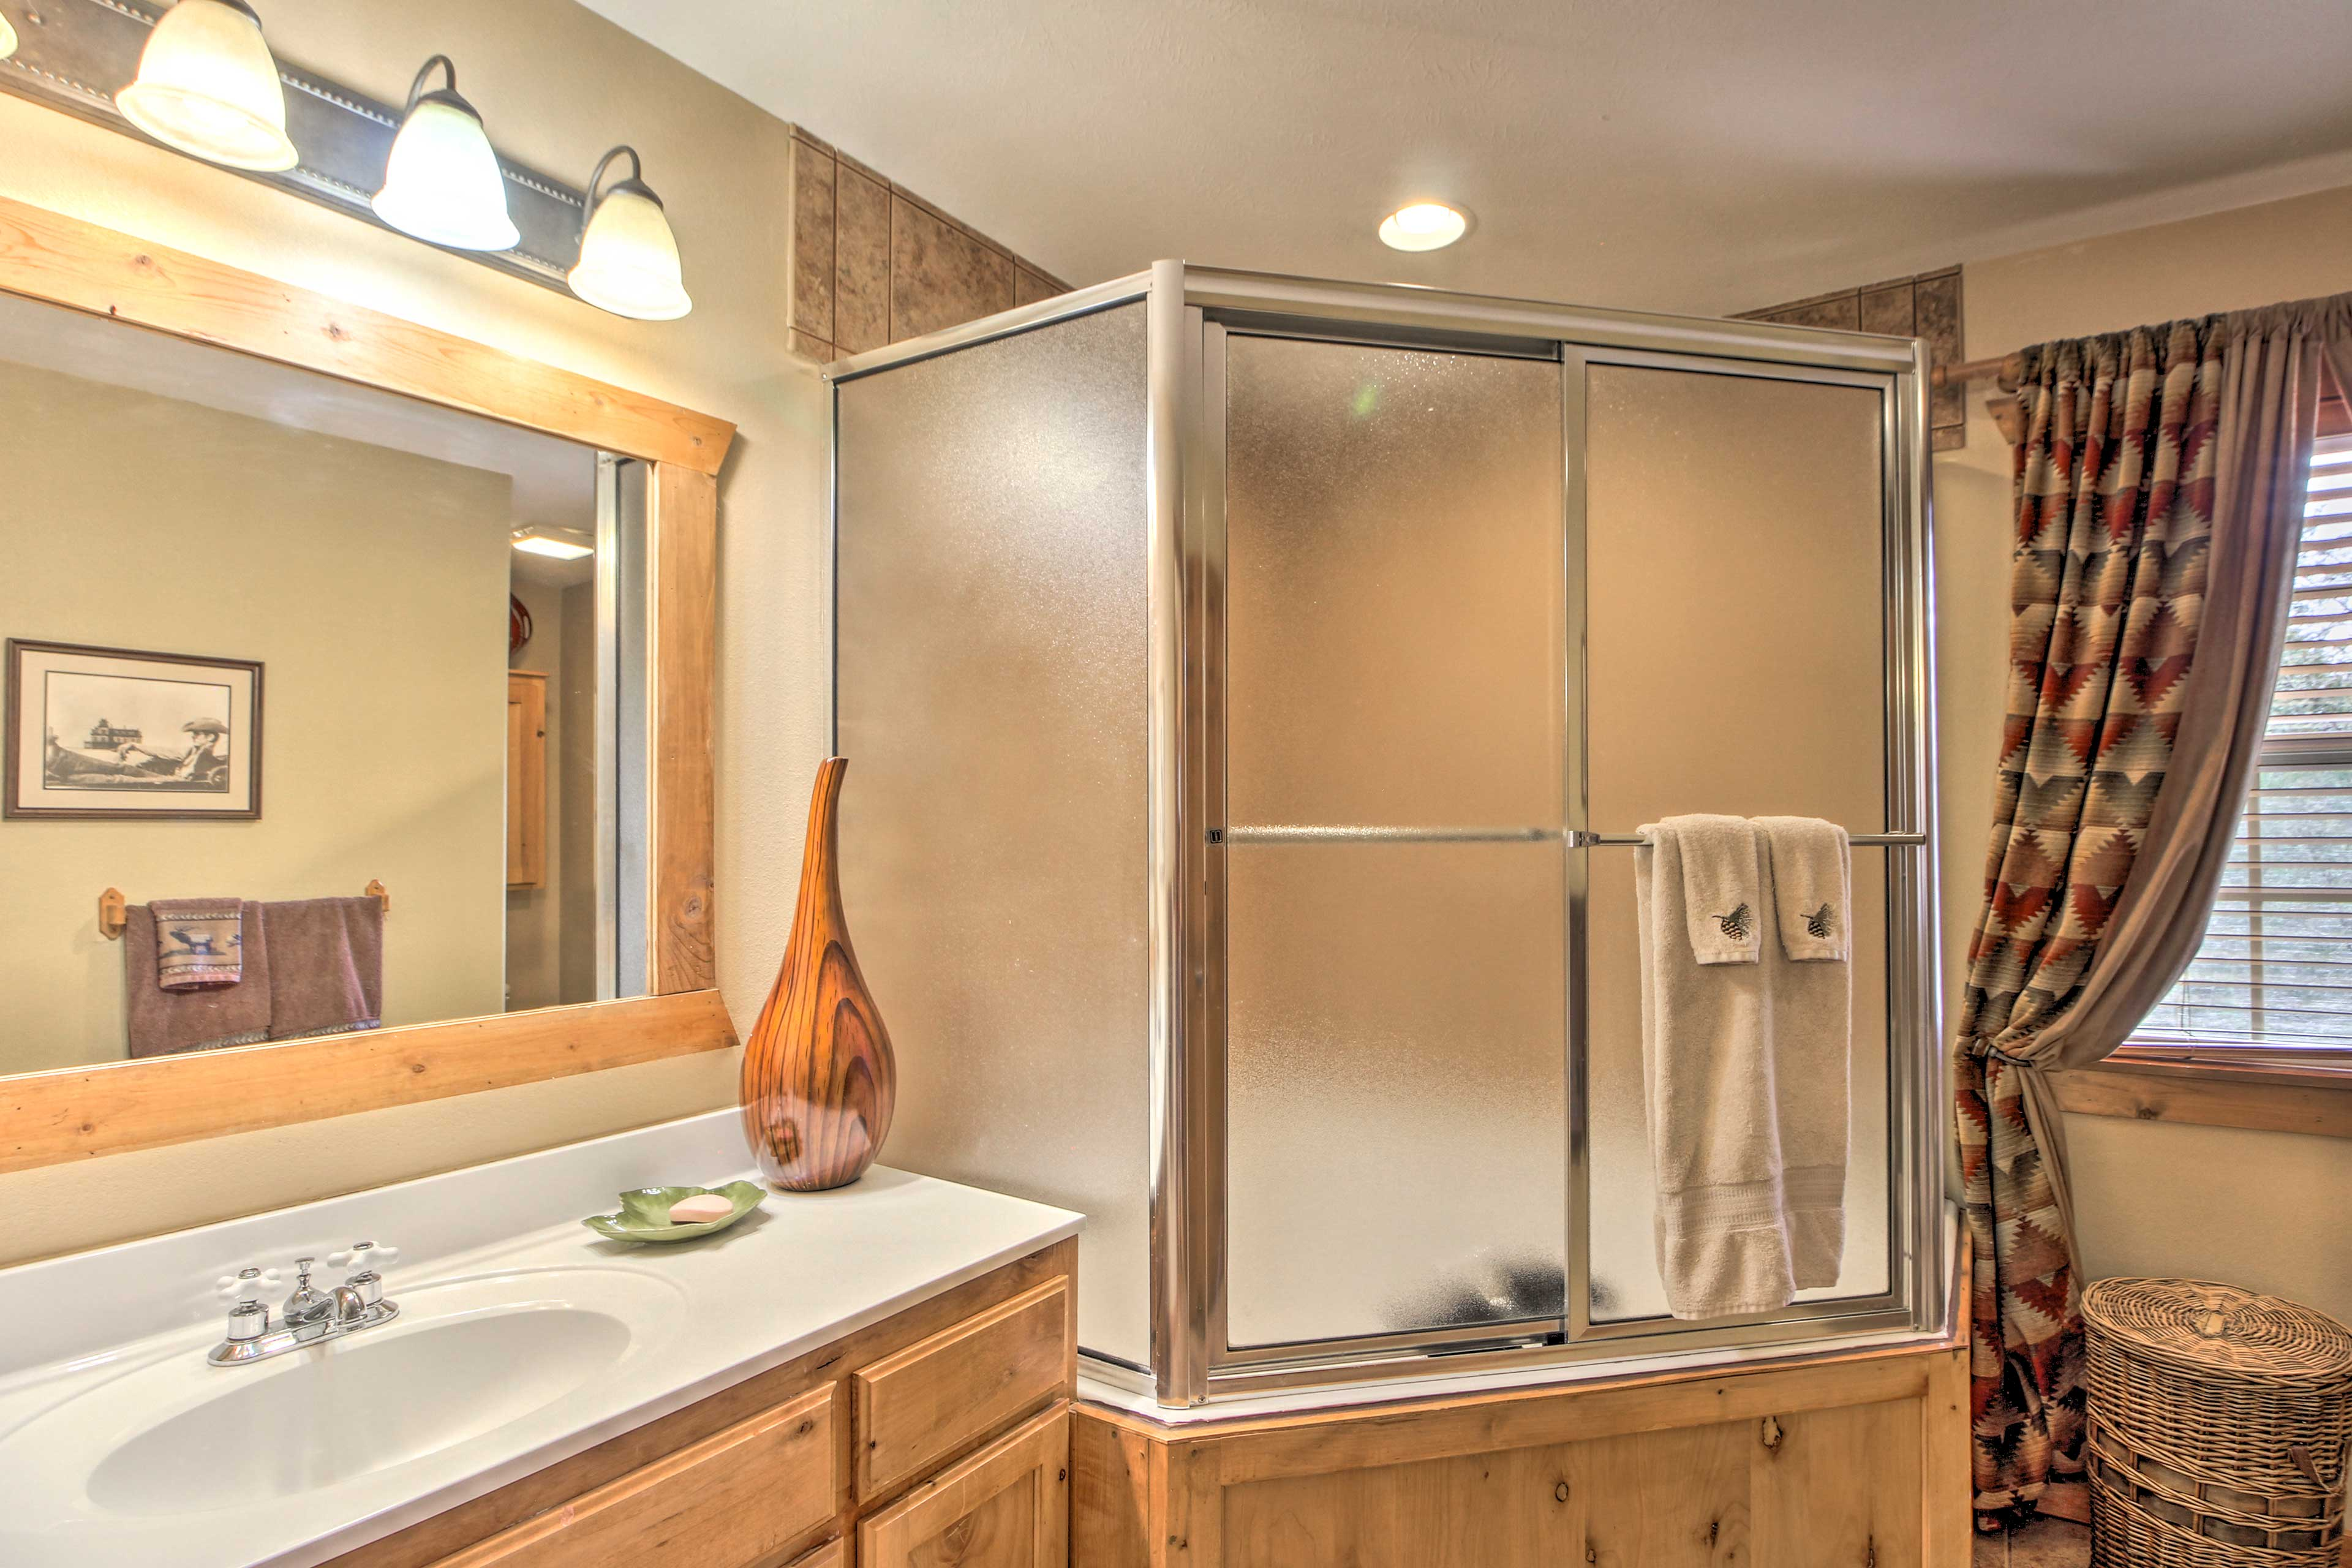 There is a luxurious en-suite bathroom!